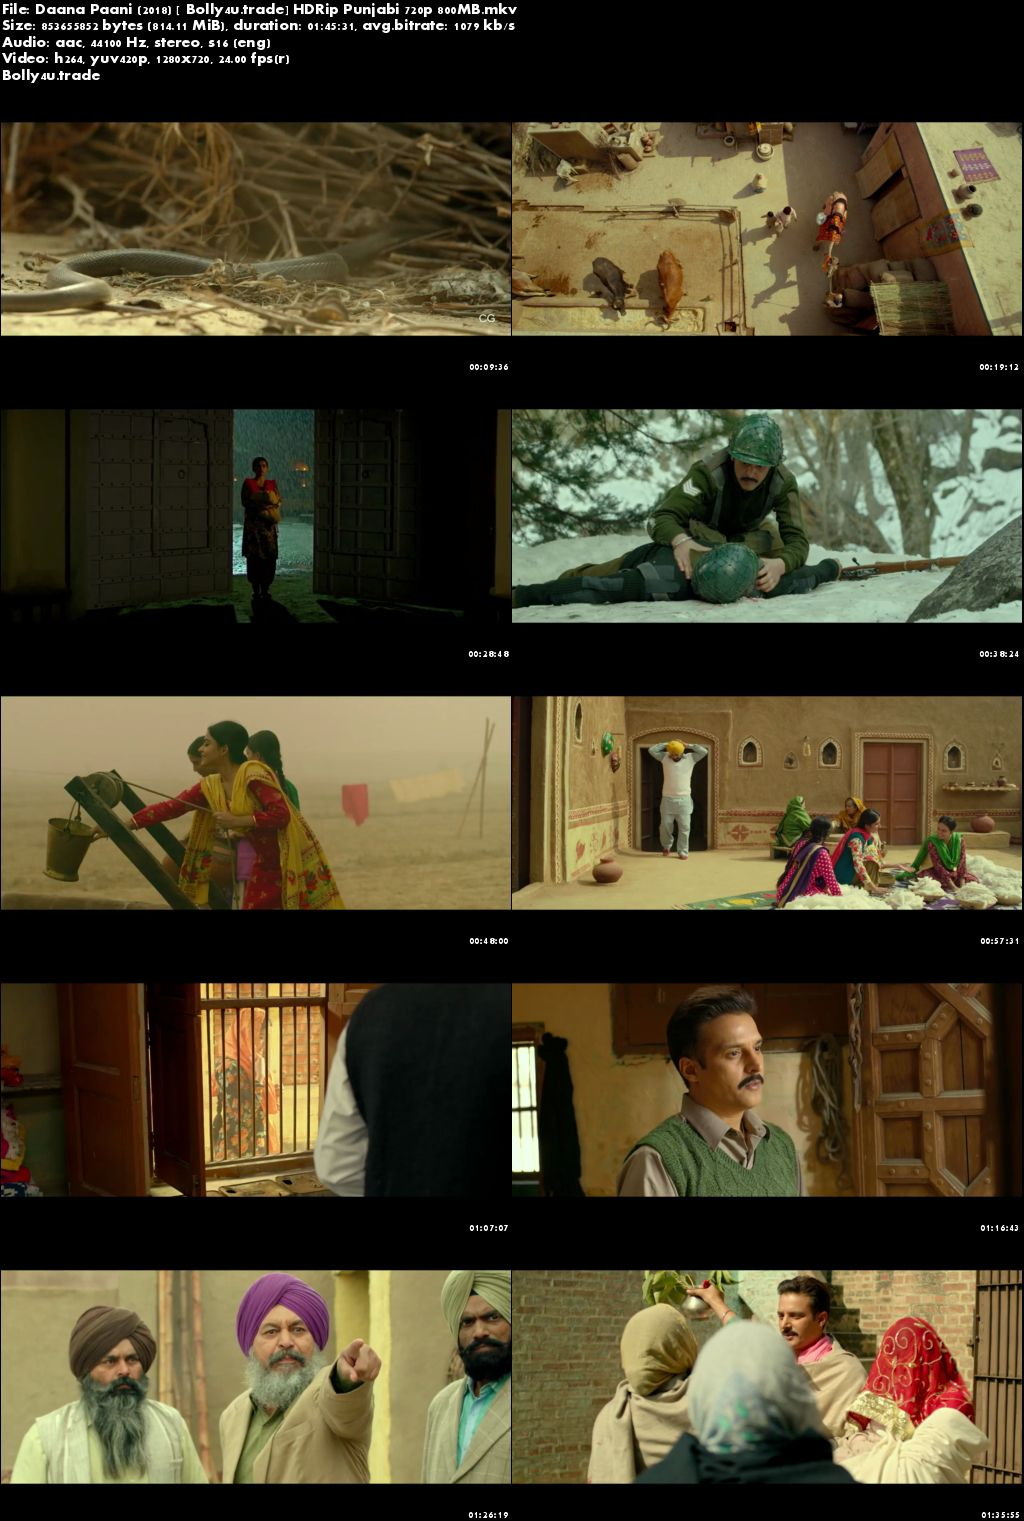 Daana Paani 2018 HDRip 300Mb Full Punjabi Movie Download 480p